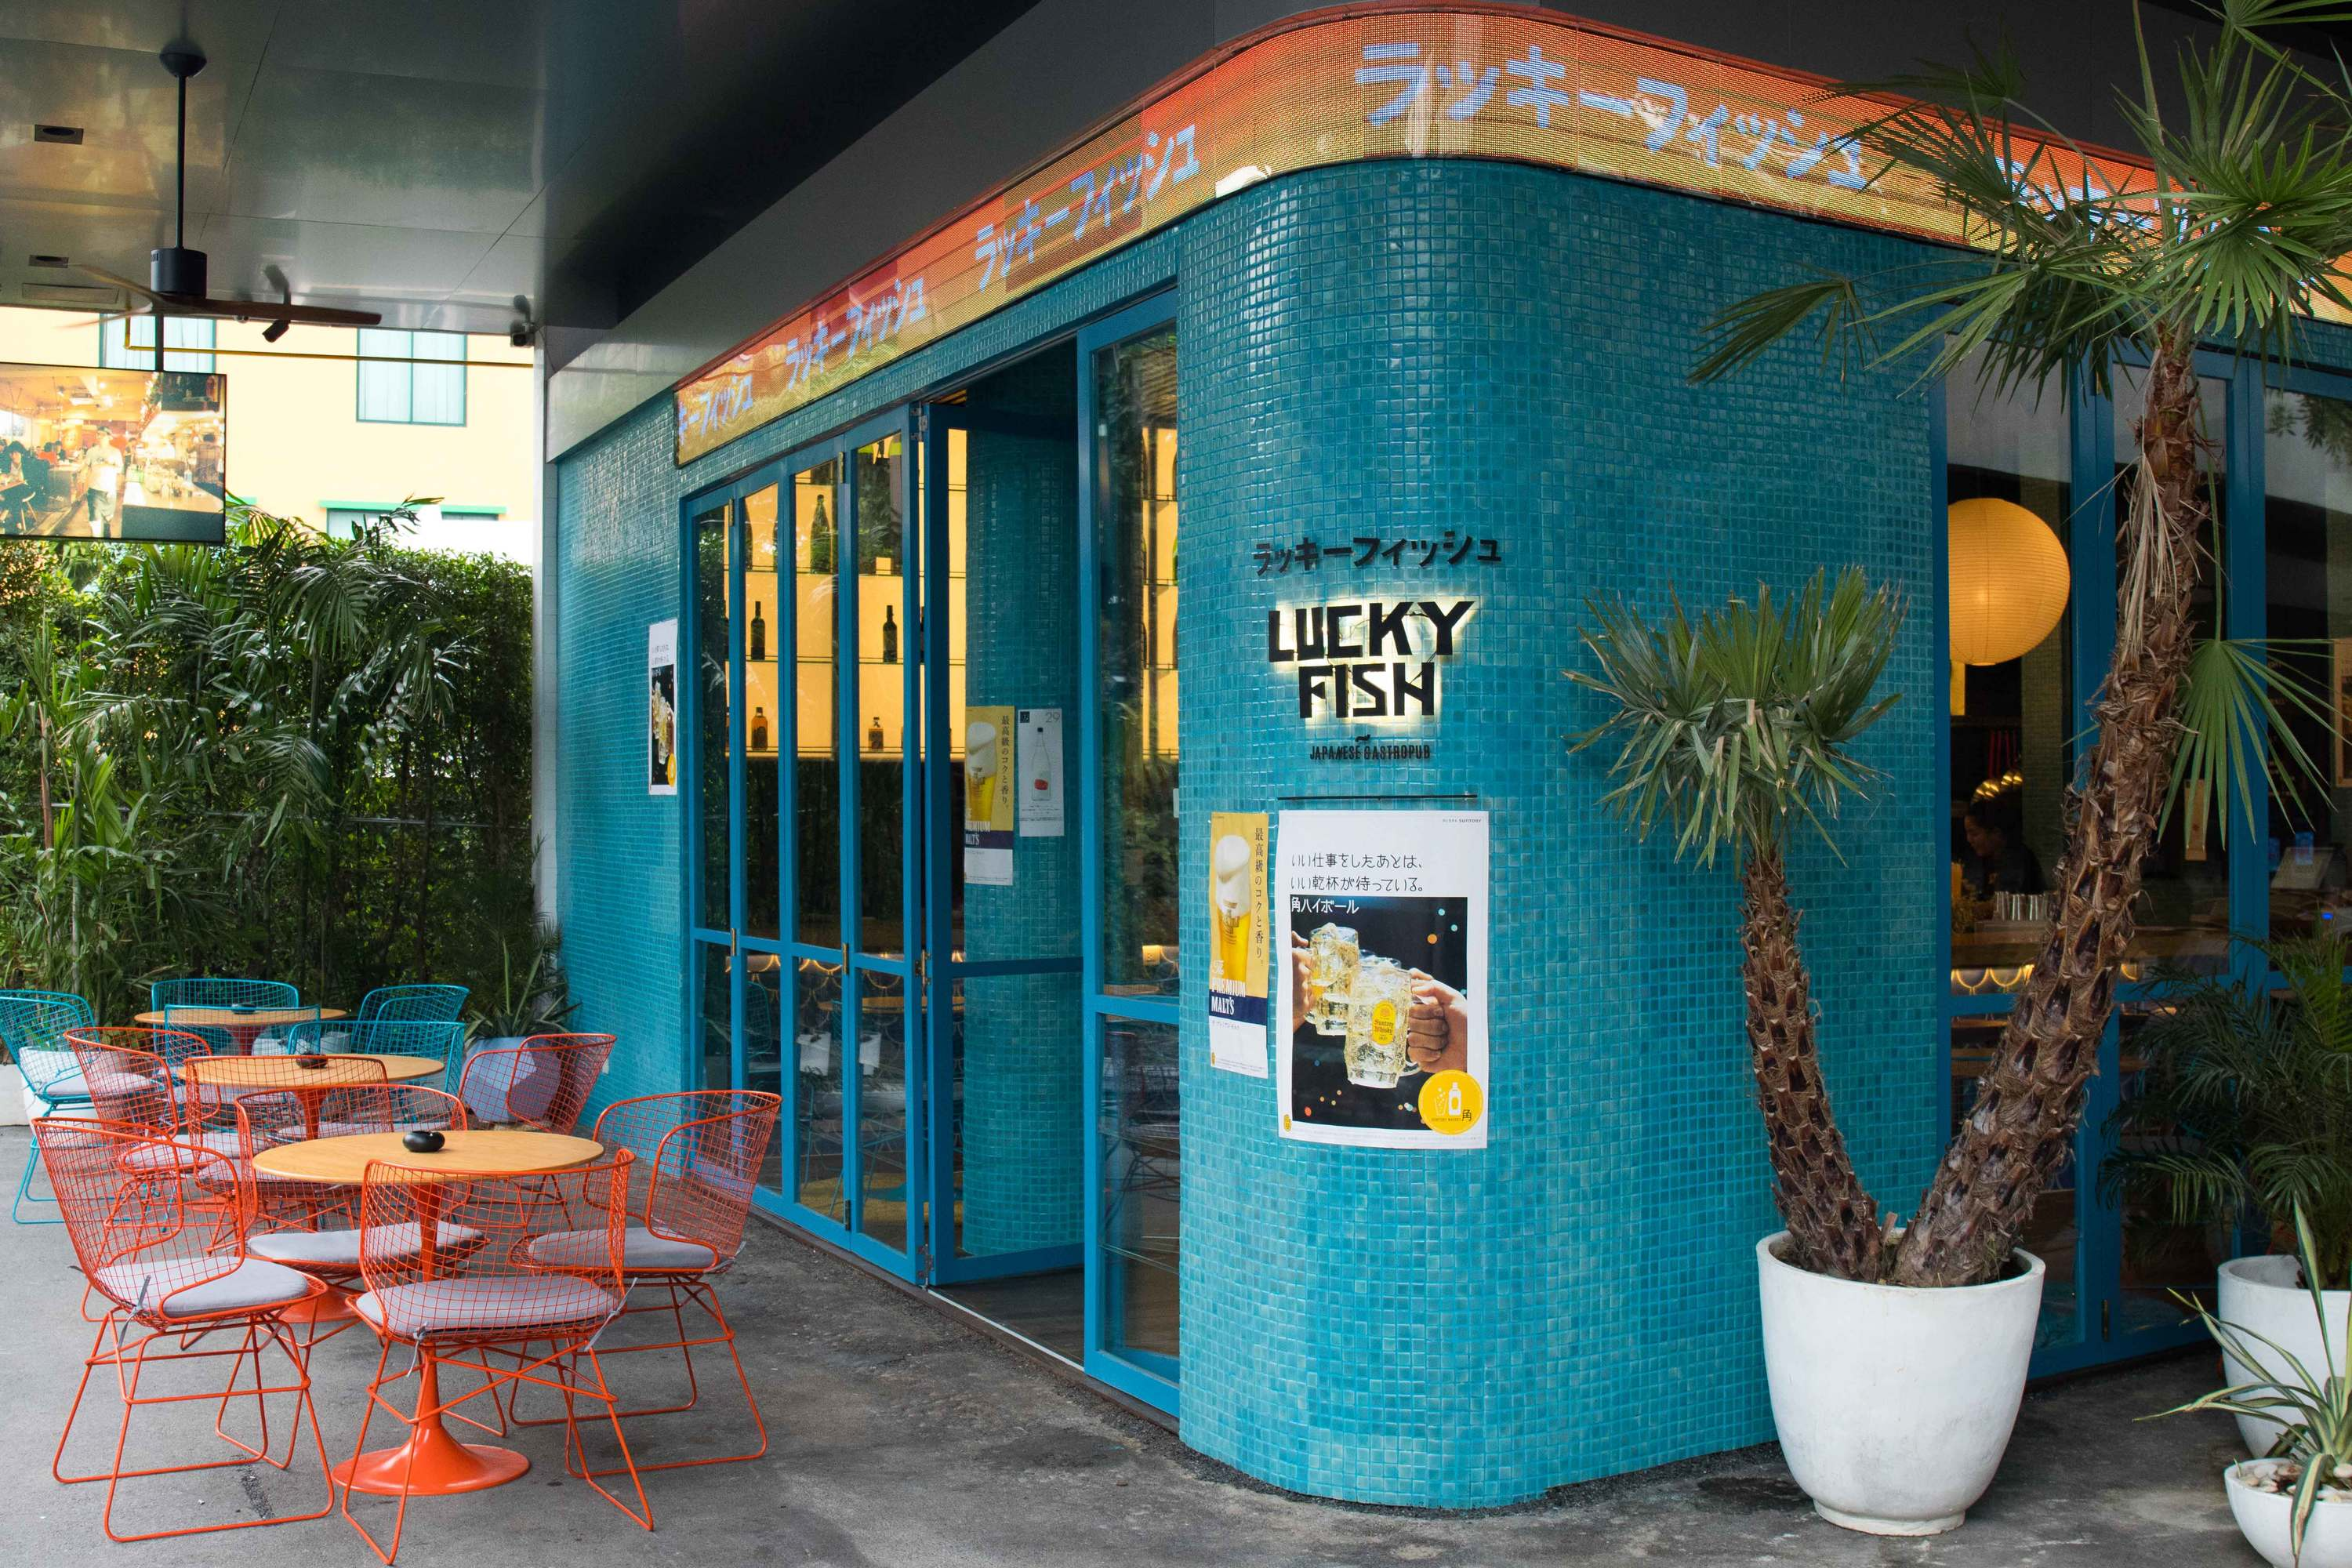 Lucky Fish, modern izakaya in 72 Courtyard, Thonglor